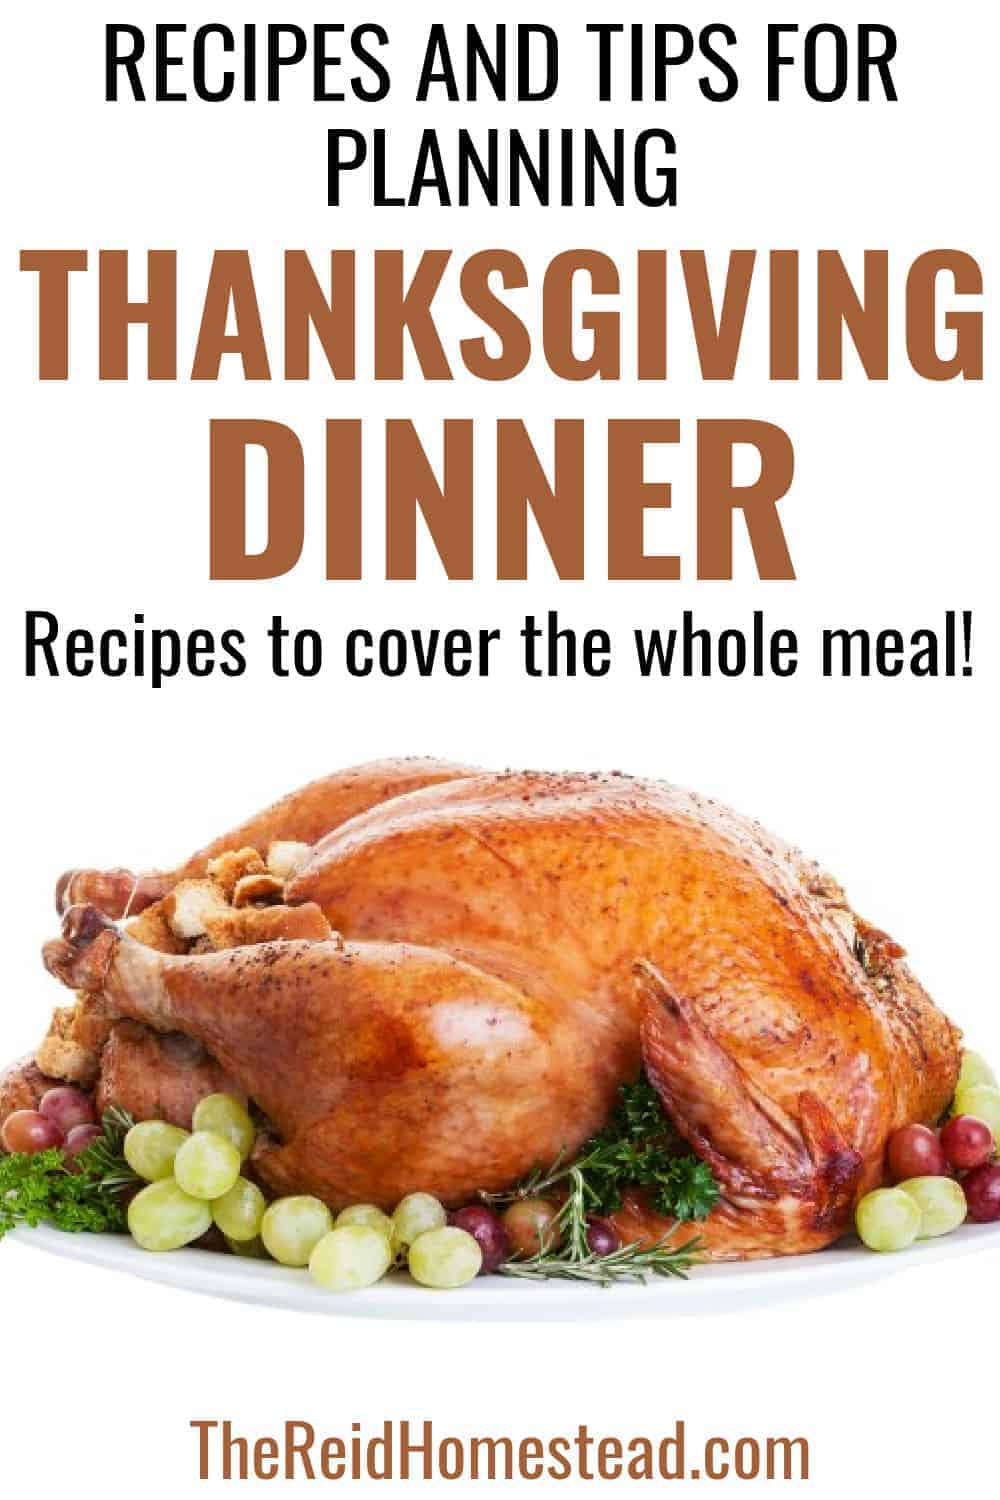 a roasted turkey on a platter with text overlay Recipes and Tips for Planning Your Thanksgiving Dinner